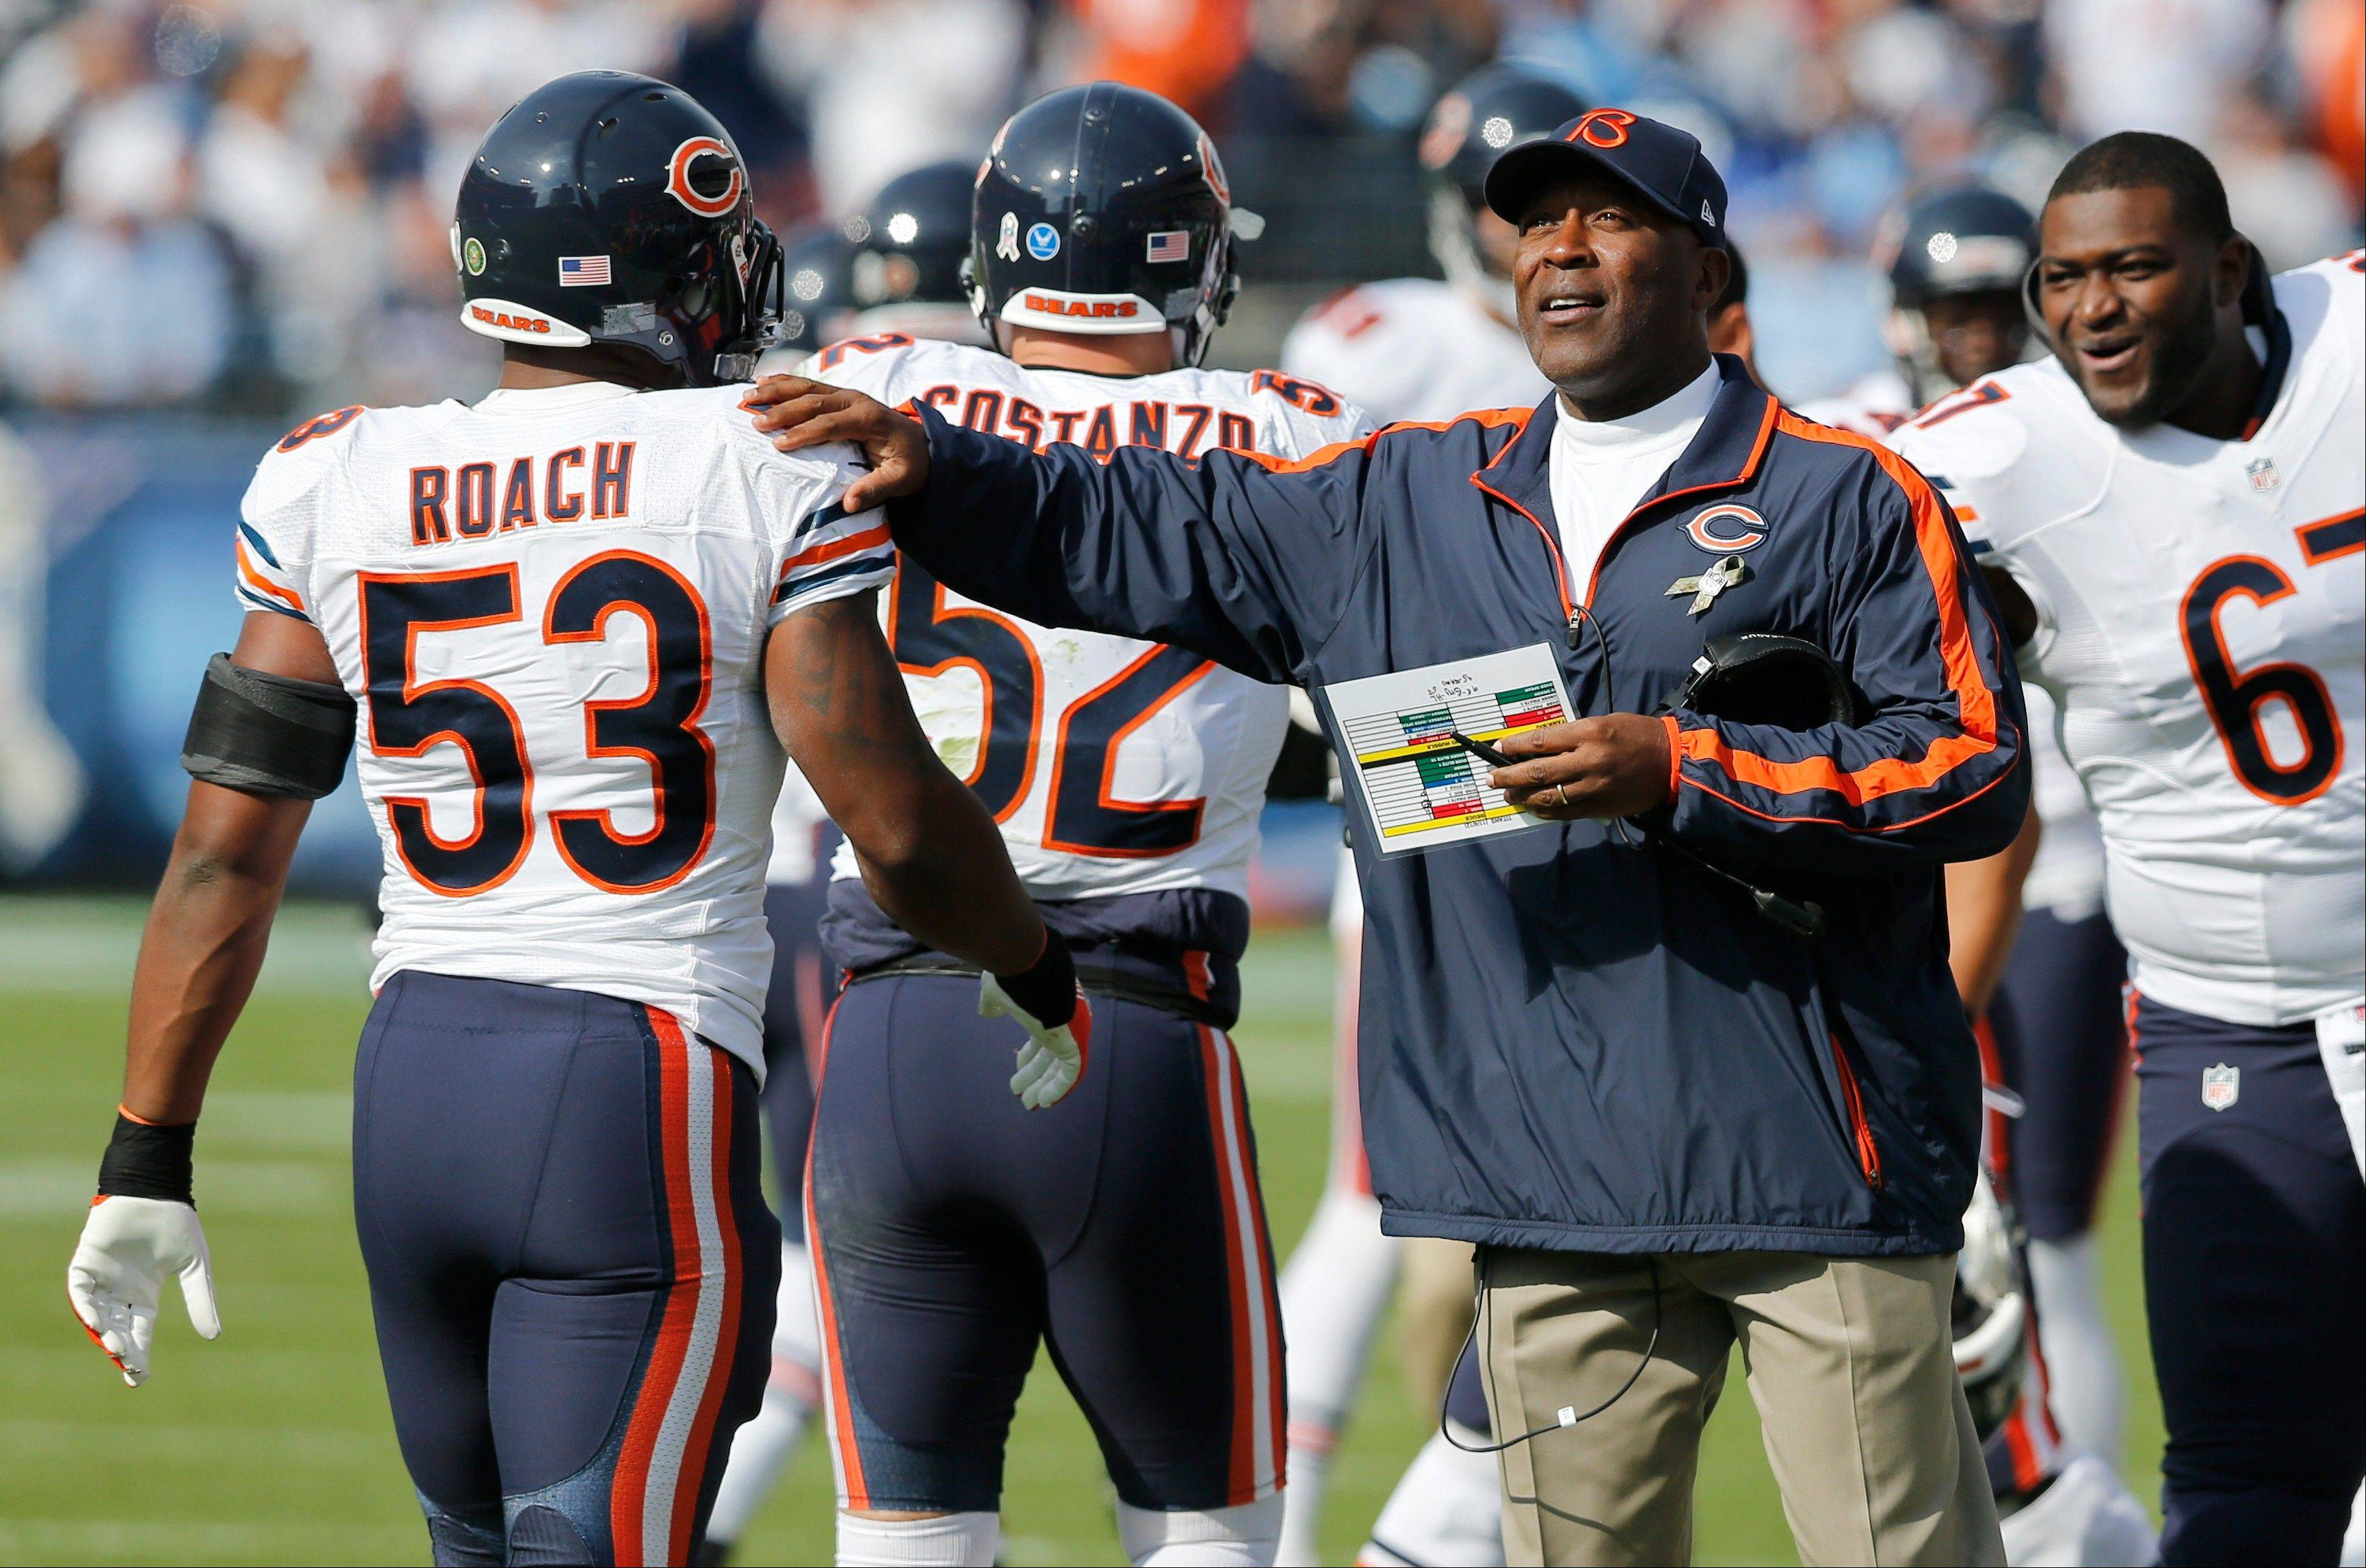 Next up for coach Lovie Smith and the Bears (7-1): the Houston Texas (7-1) at home and the San Francisco 49ers (6-2) on the road.